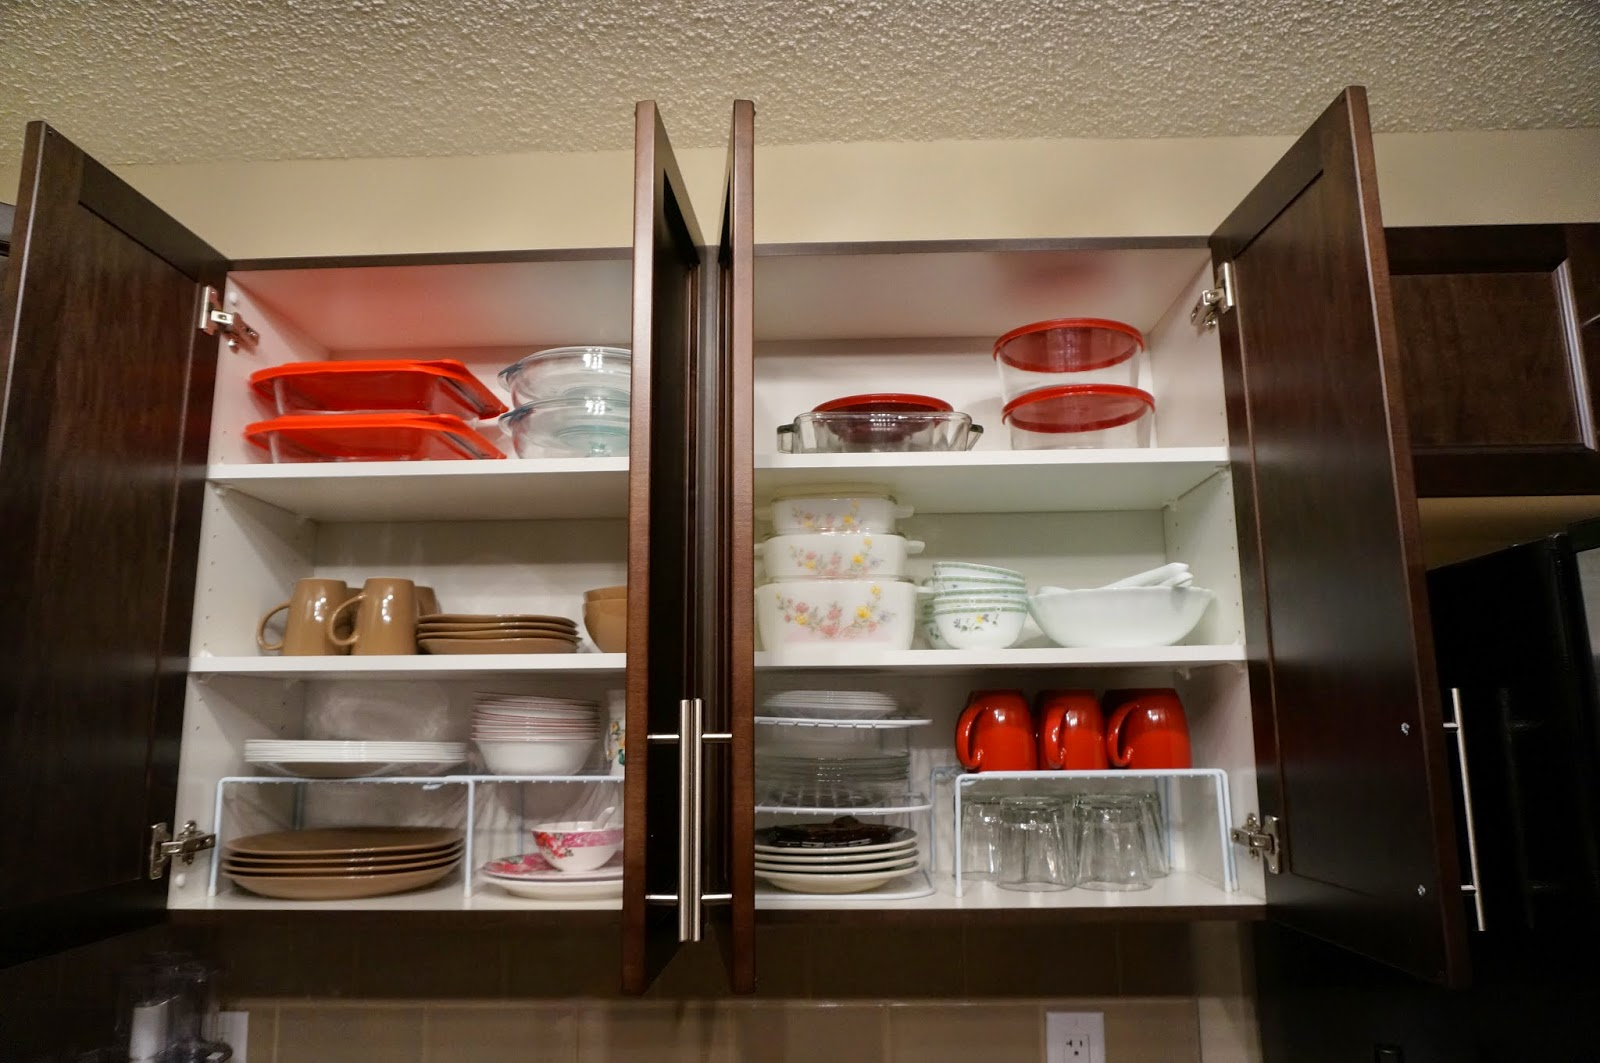 We Love Cozy Homes: How to Organize Kitchen Cabinet Shelves?